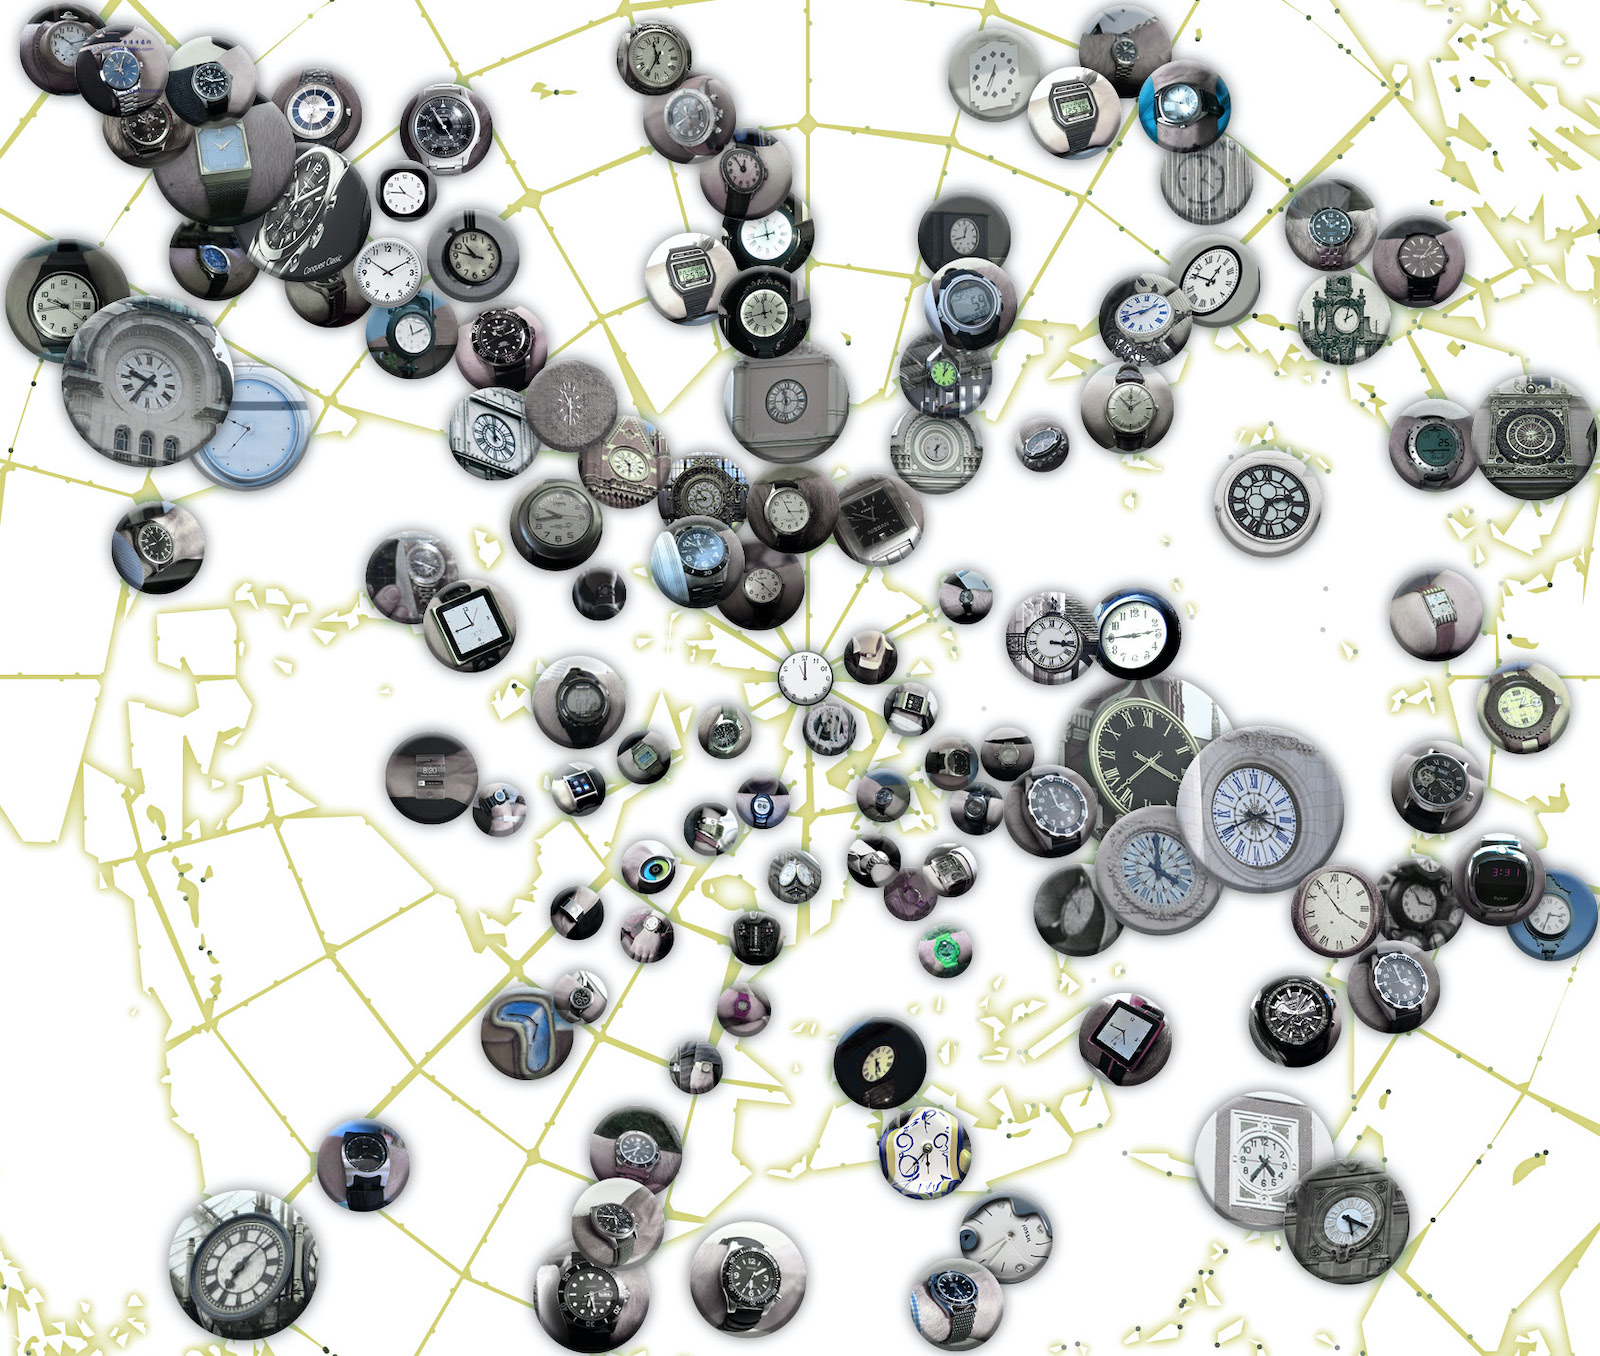 A collage of circular clock images in front of an outlined image of a globe.